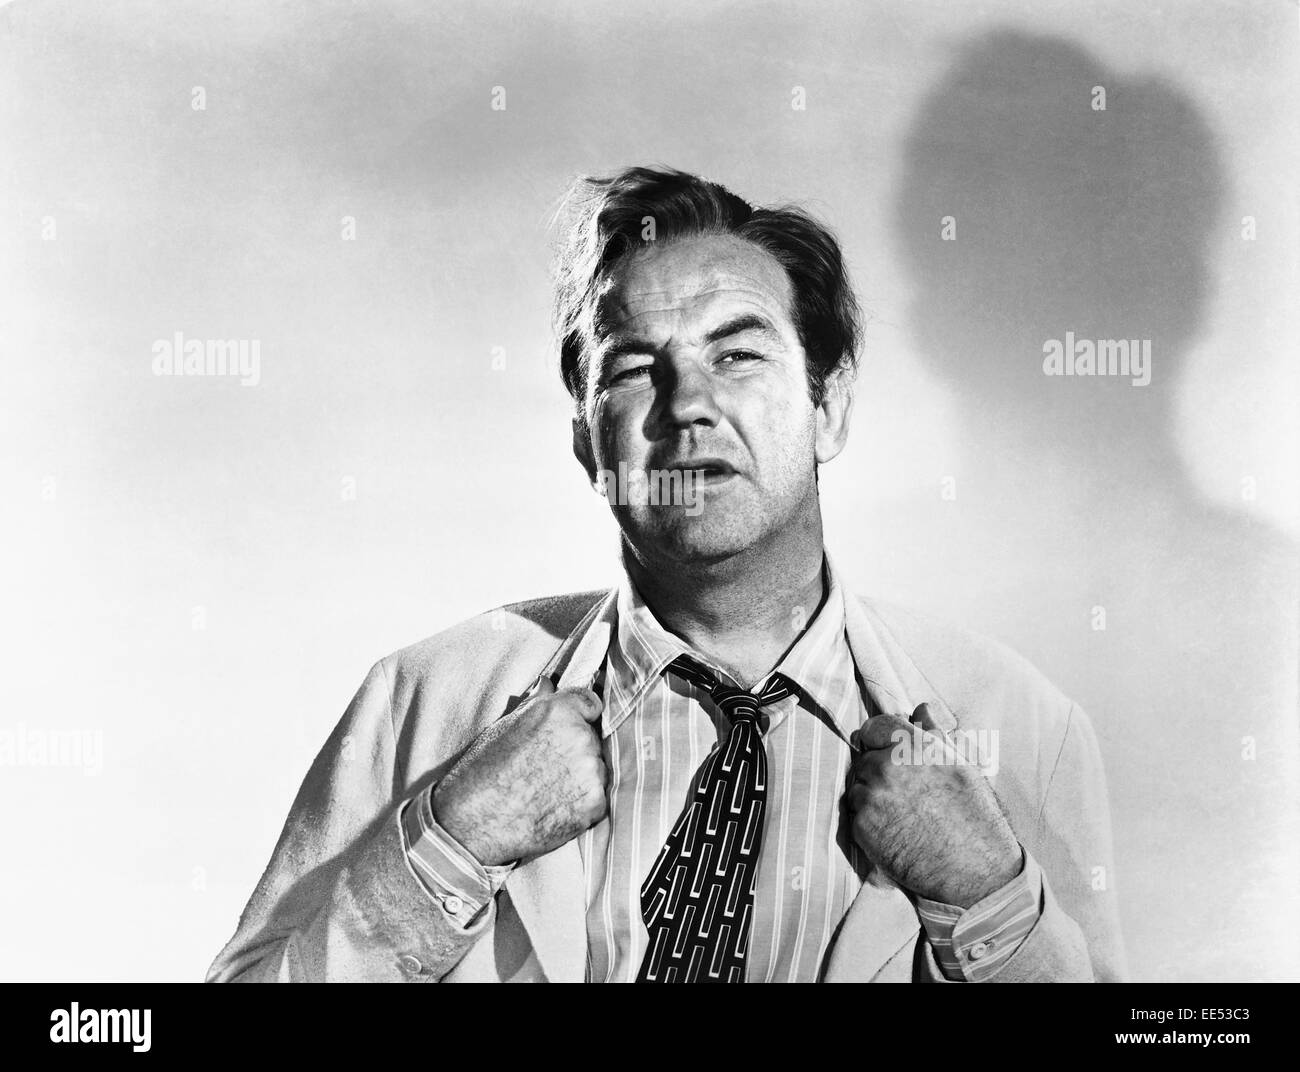 Broderick Crawford, Promotional Portrait, on-set of the Film, 'All the King's Men', 1949 - Stock Image